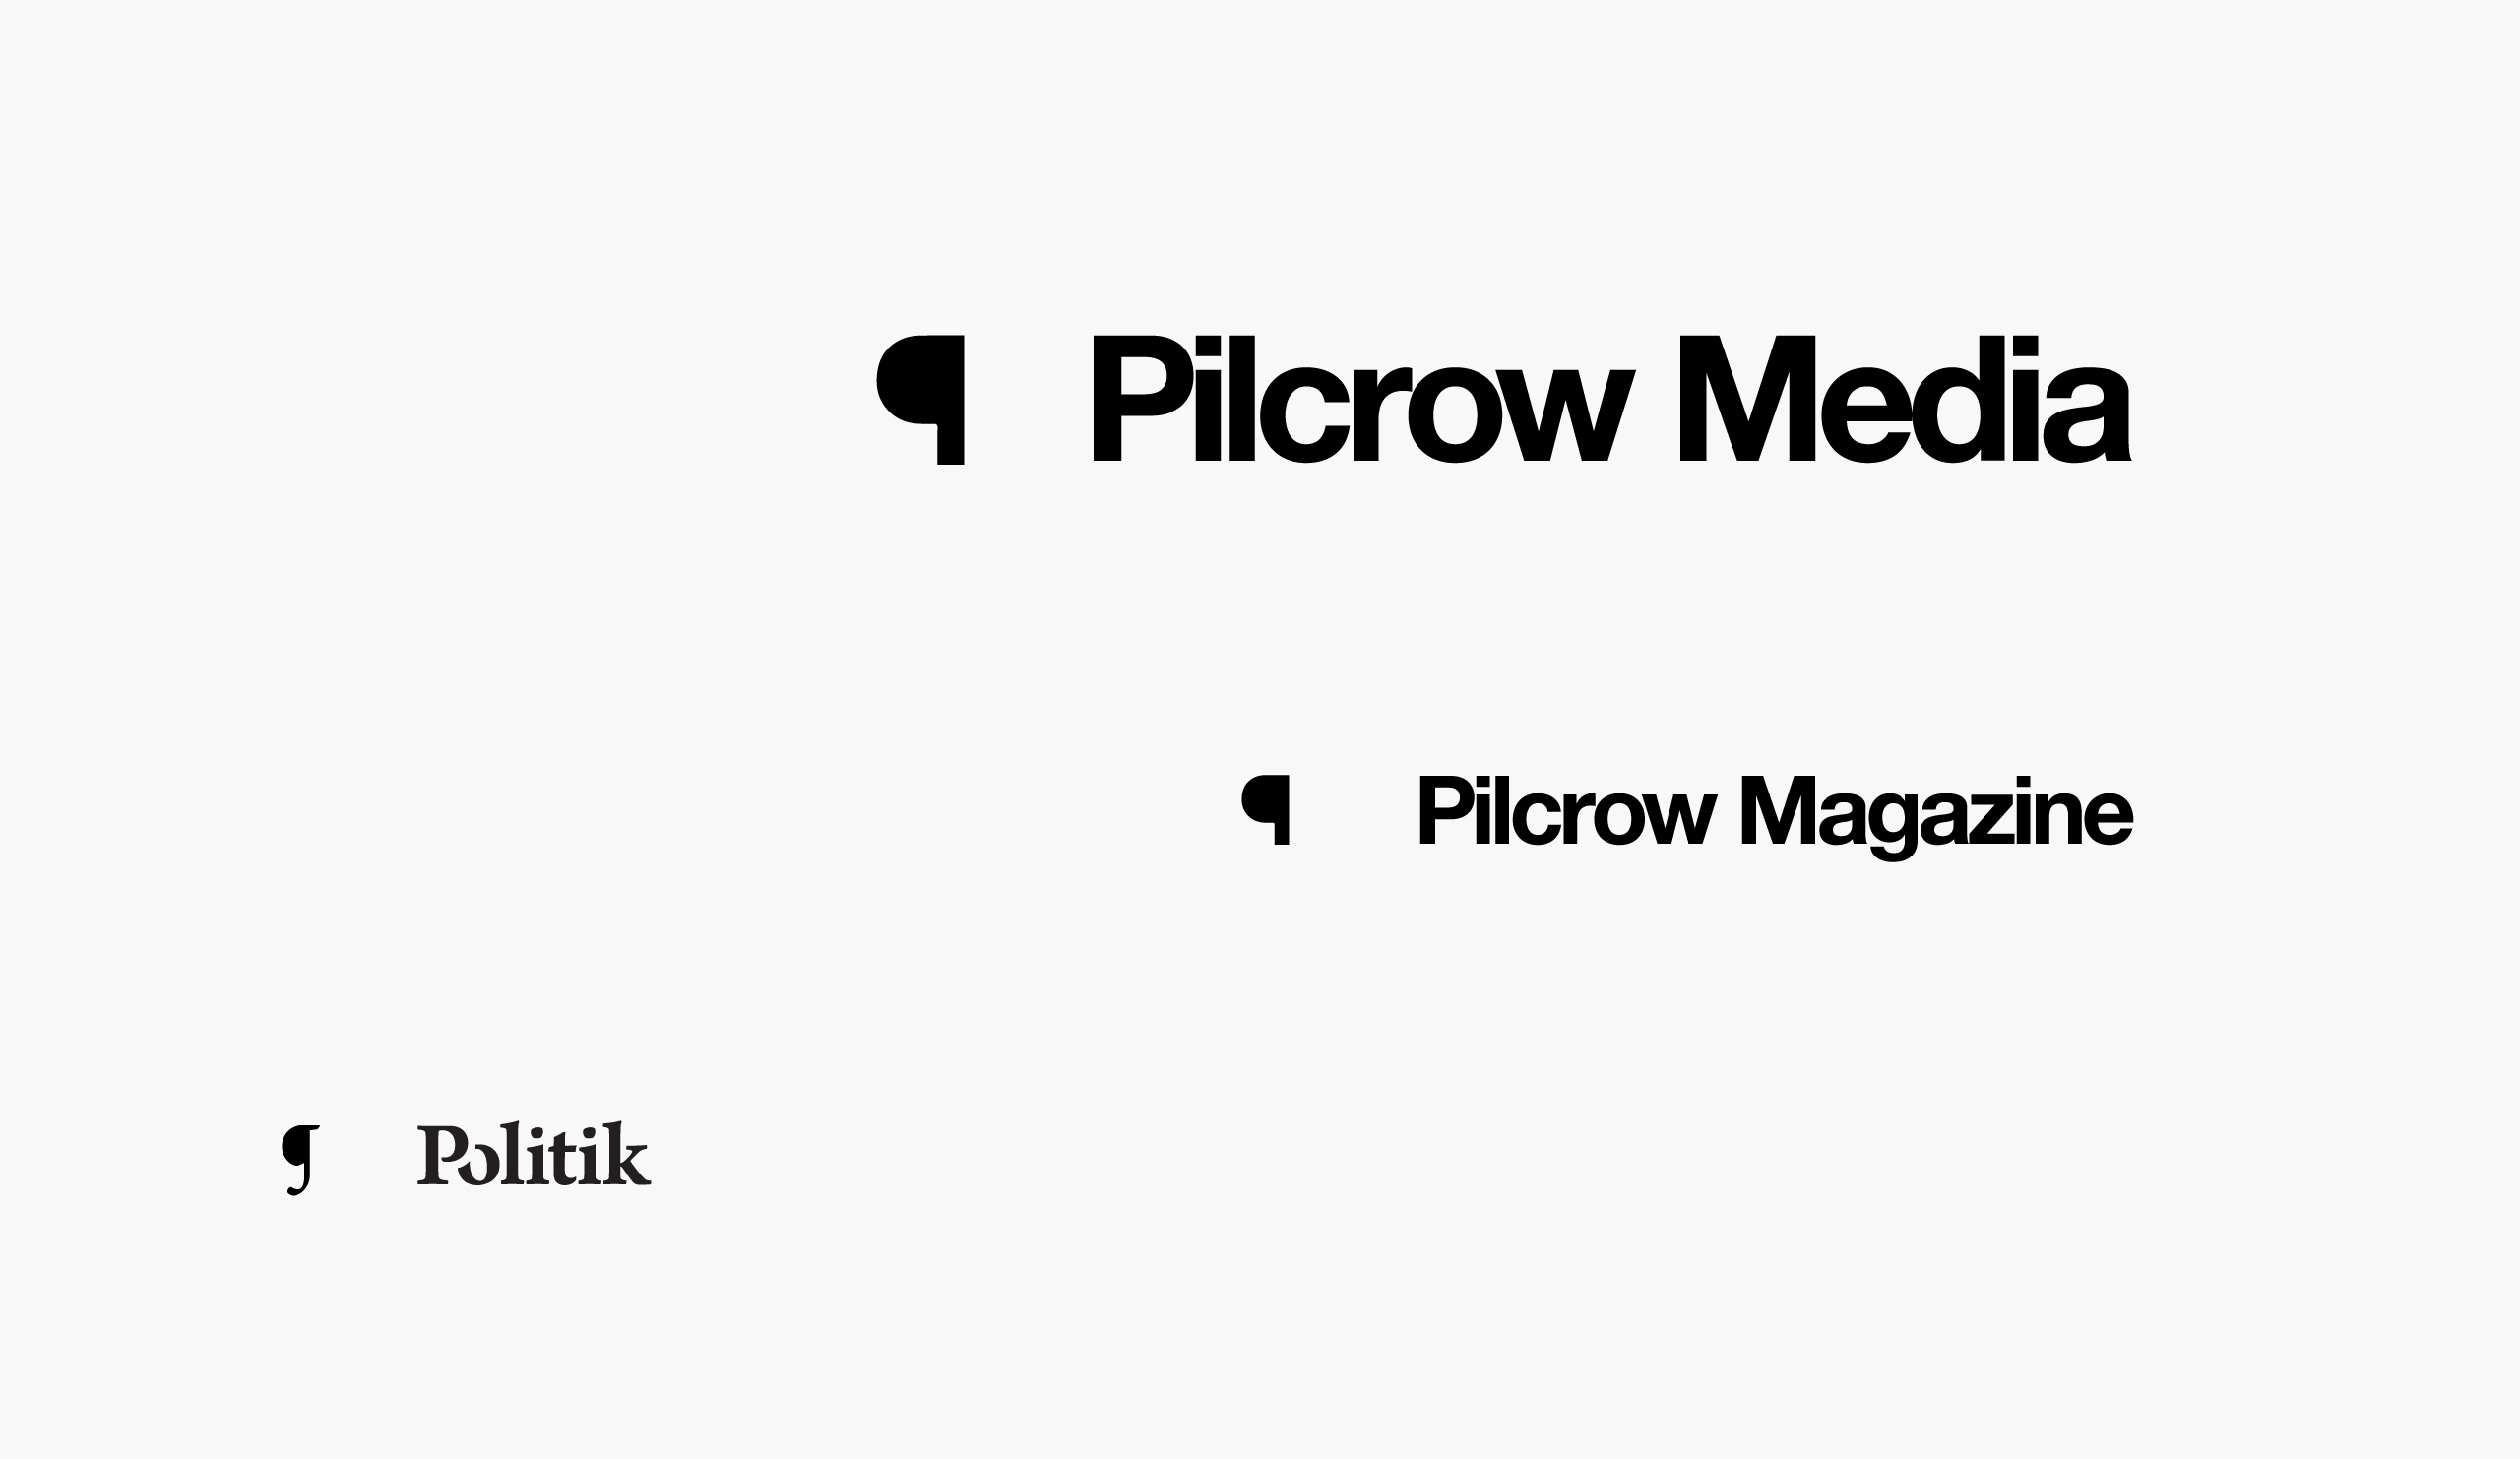 Three main logos for Pilcrow media family of products — Media, Magazine, and Politik — by Dima Yagnyuk.